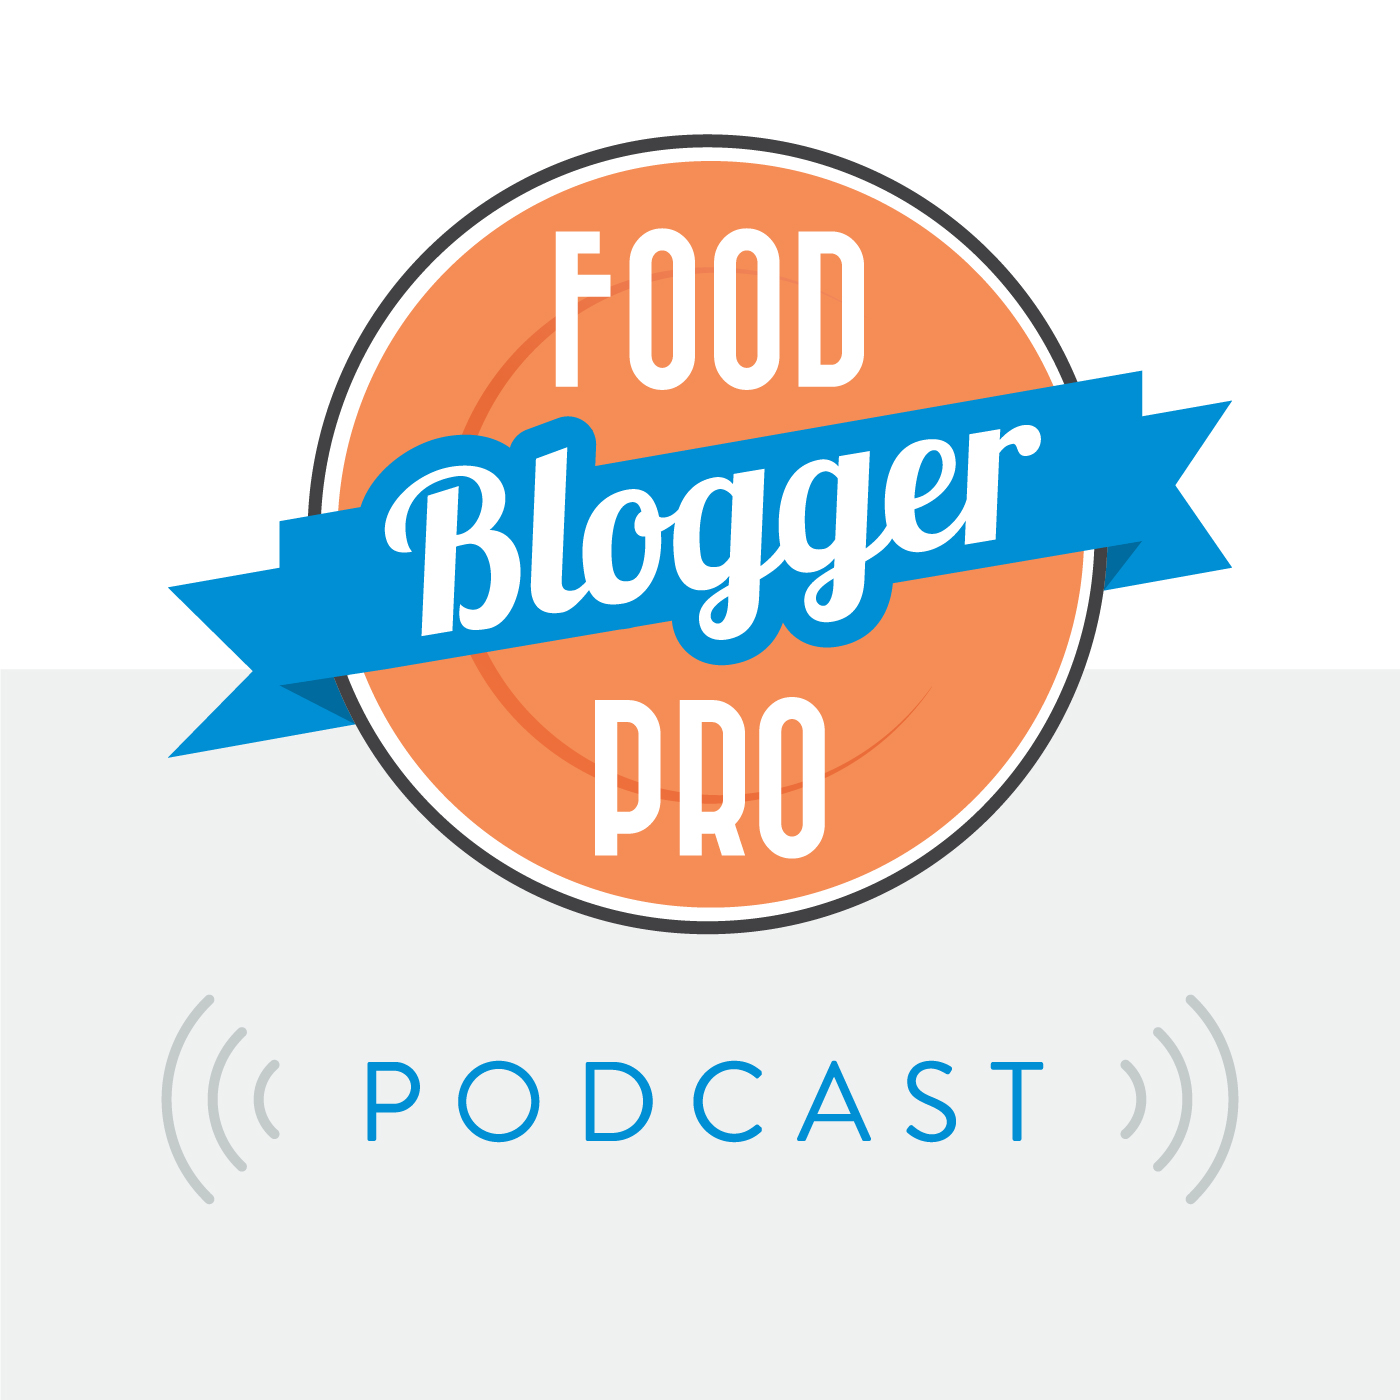 The Food Blogger Pro Podcast show art